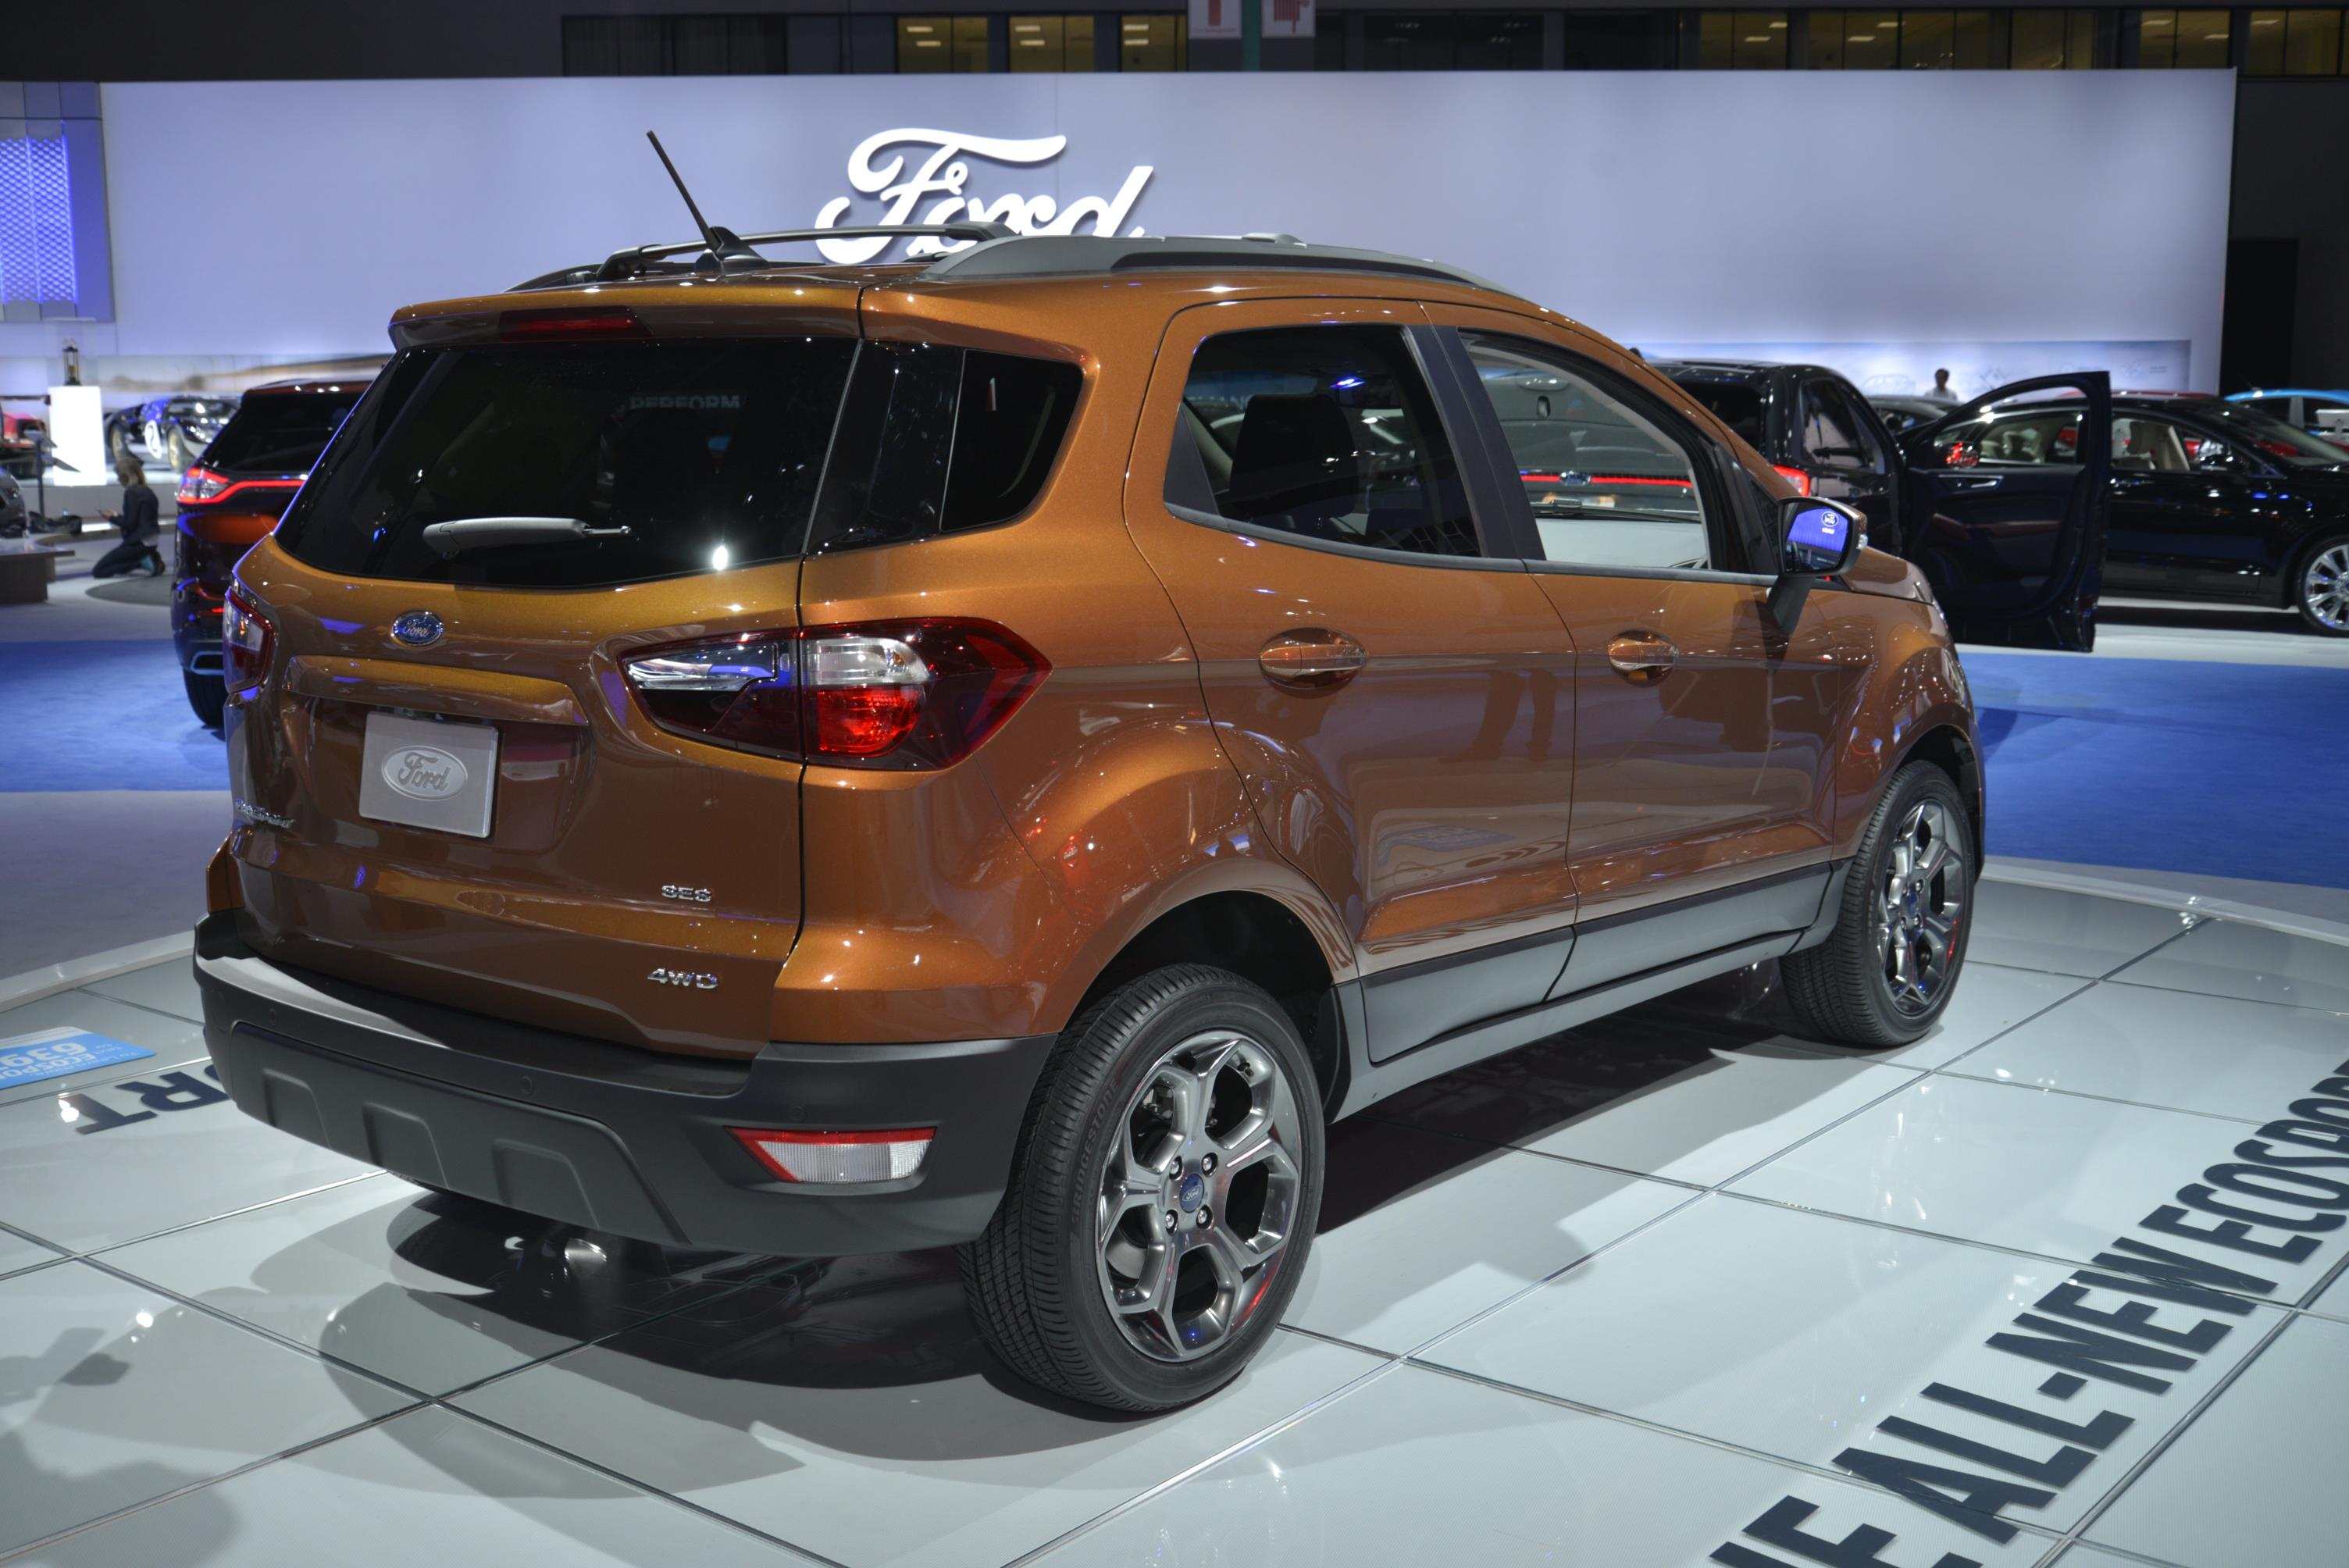 ALL-NEW ECOSPORT - FORD'S SMALLEST SUV - myAutoWorld.com